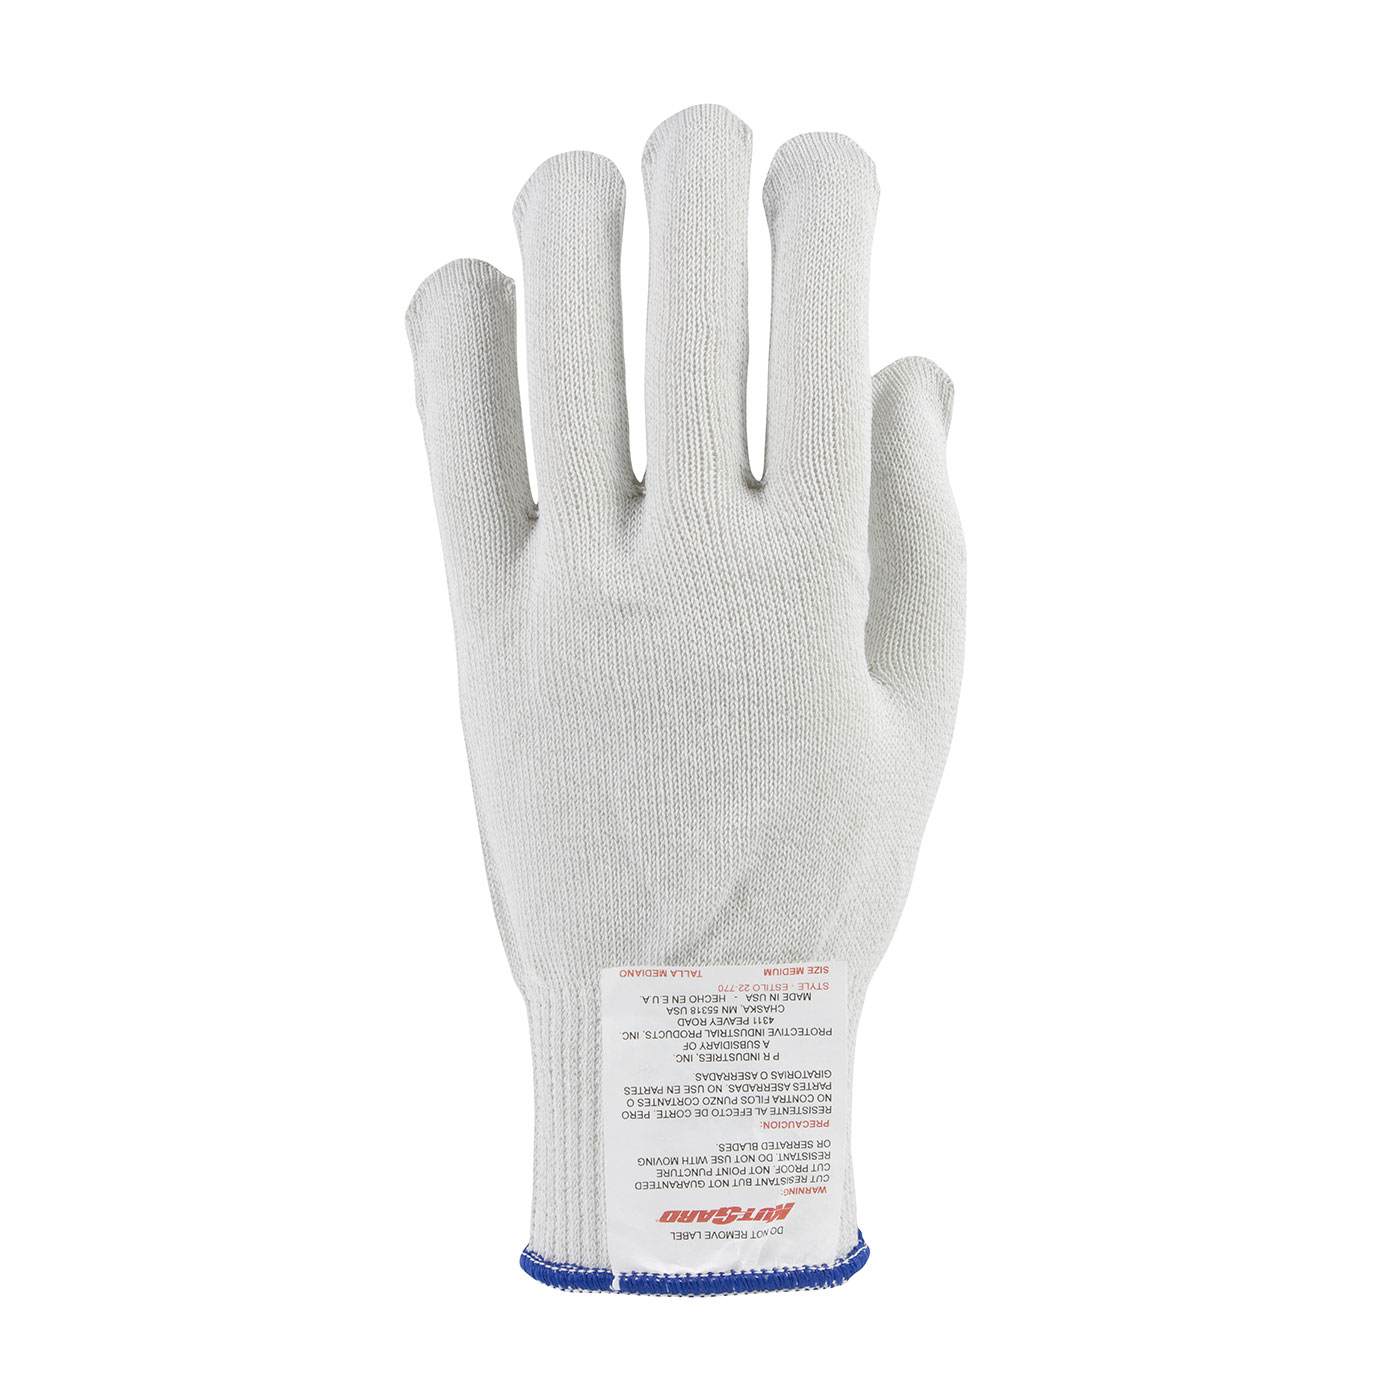 22-770 PIP® Kut-Gard® White Heavy Weight  Dyneema® A6 Cut-Resistant Antimicrobial Gloves